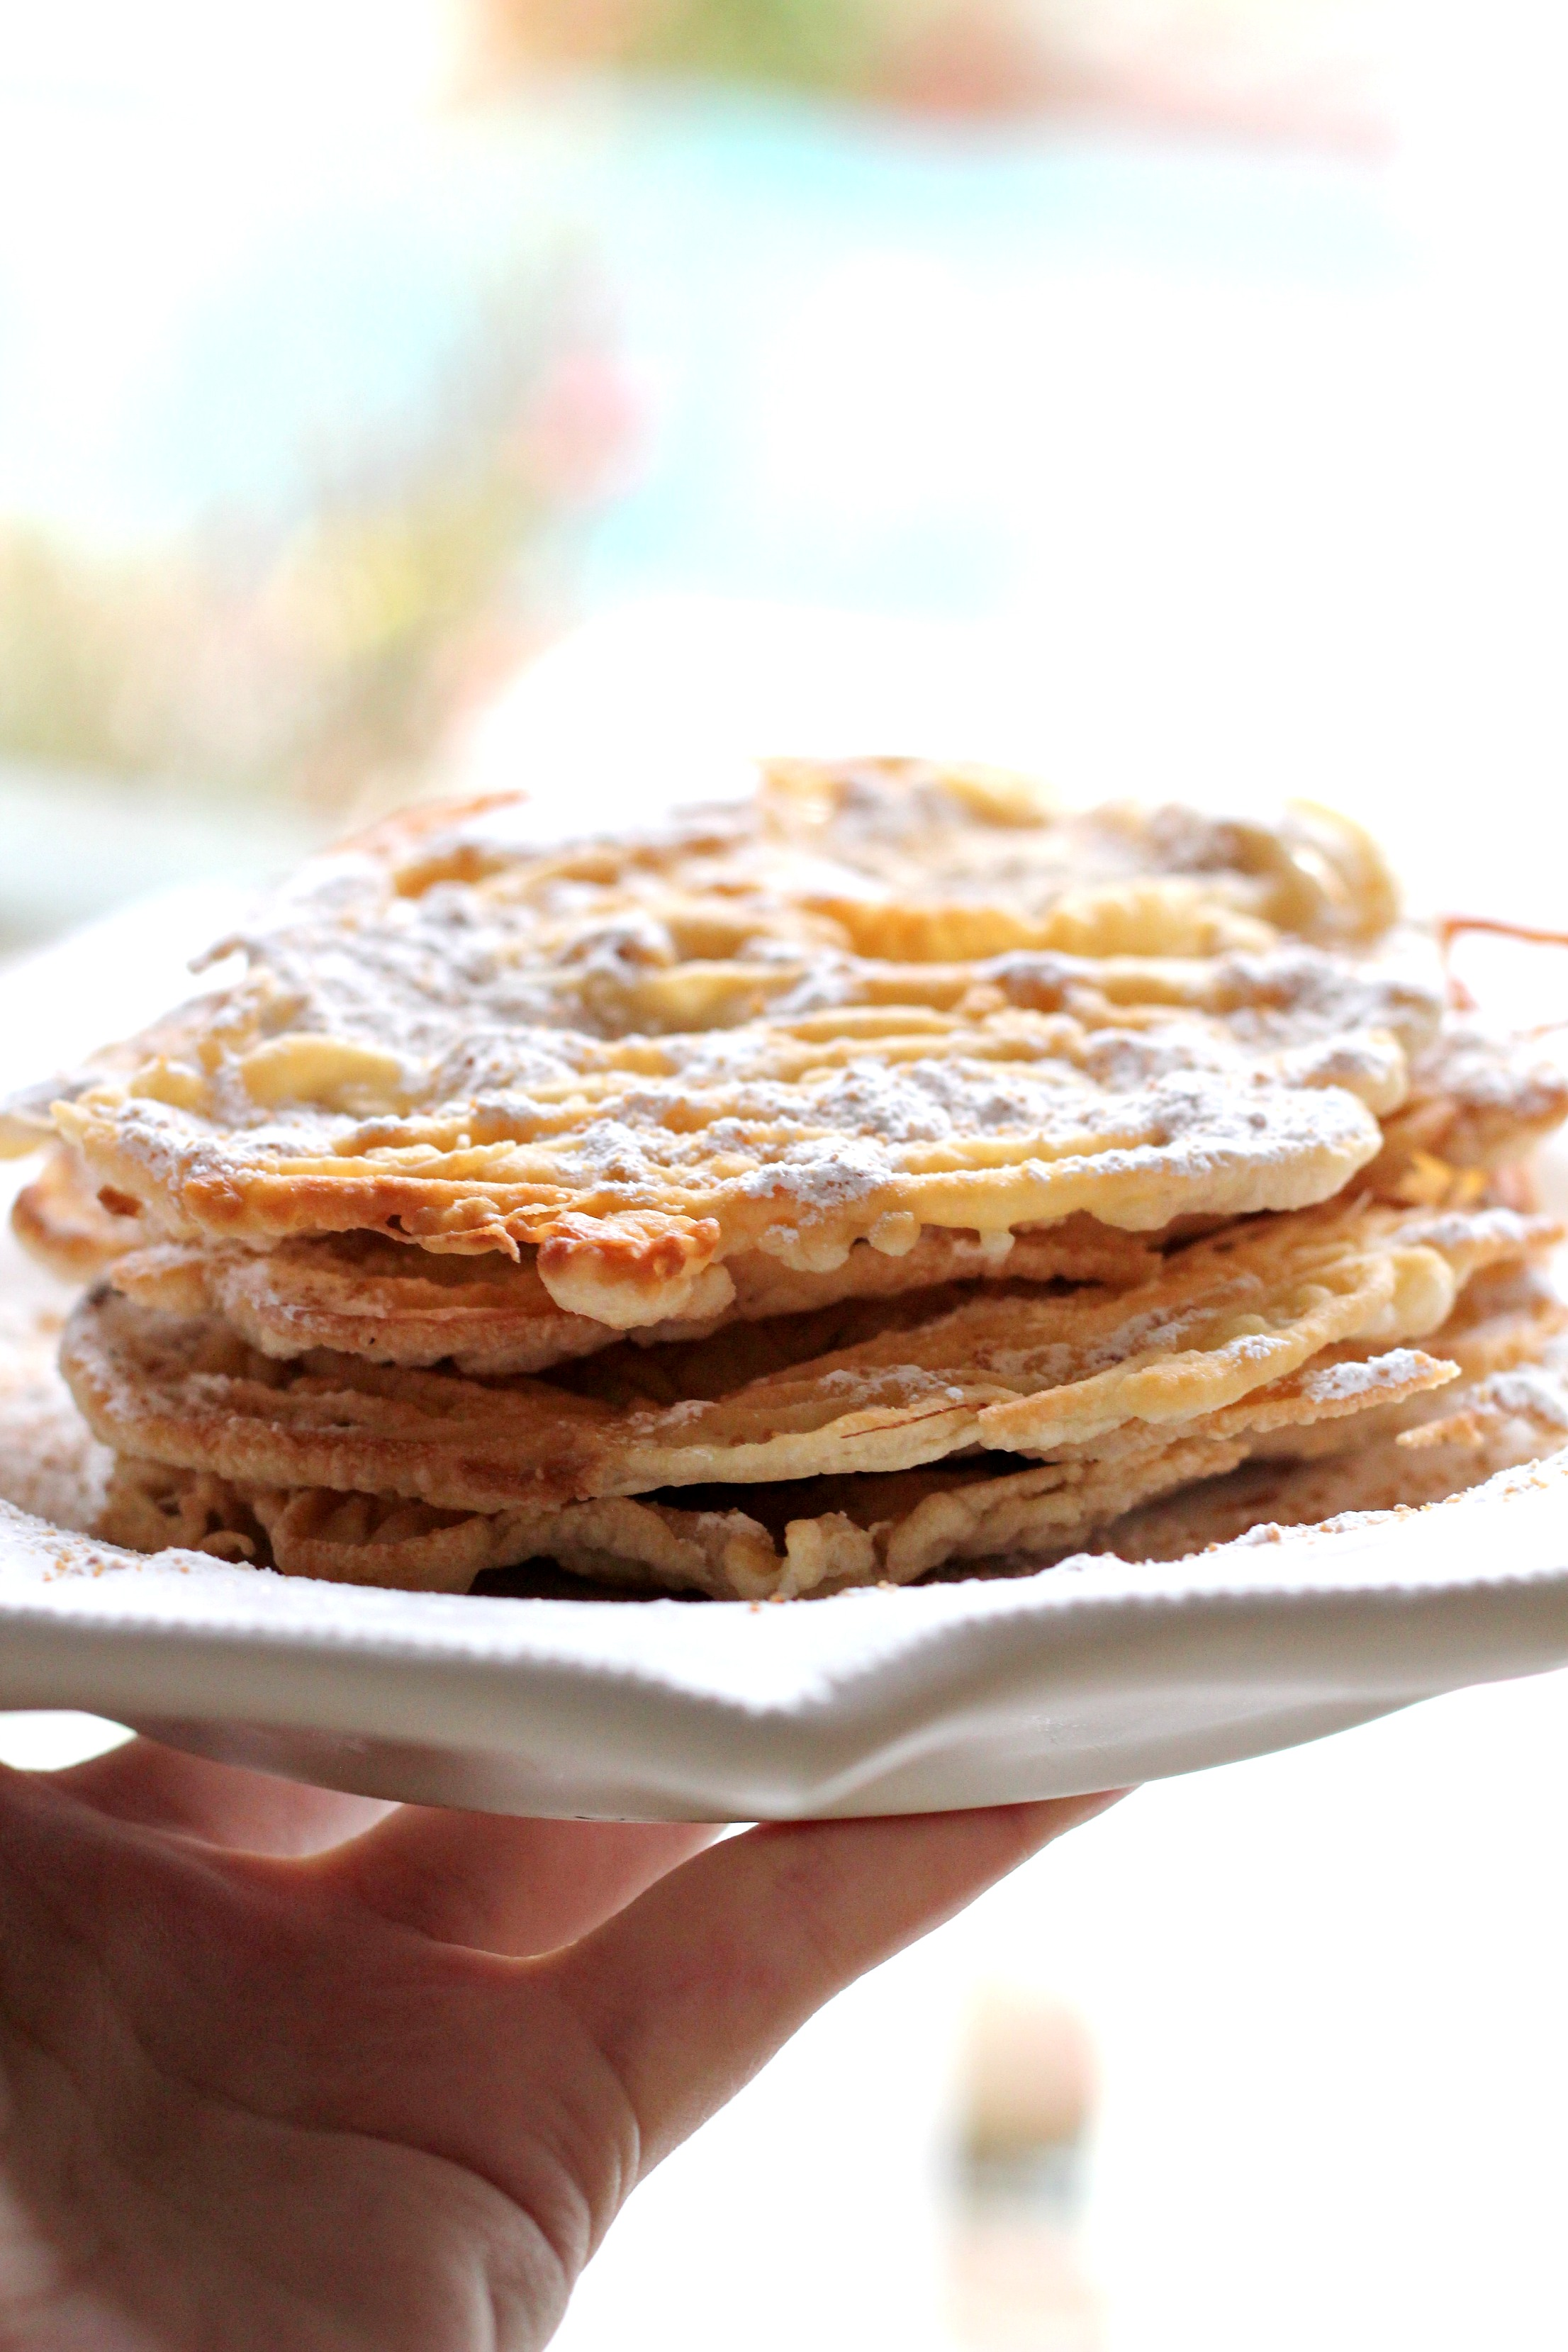 These Paleo Funnel Cakes taste just like the real thing! Who knew it could be done? We make these for the kids!